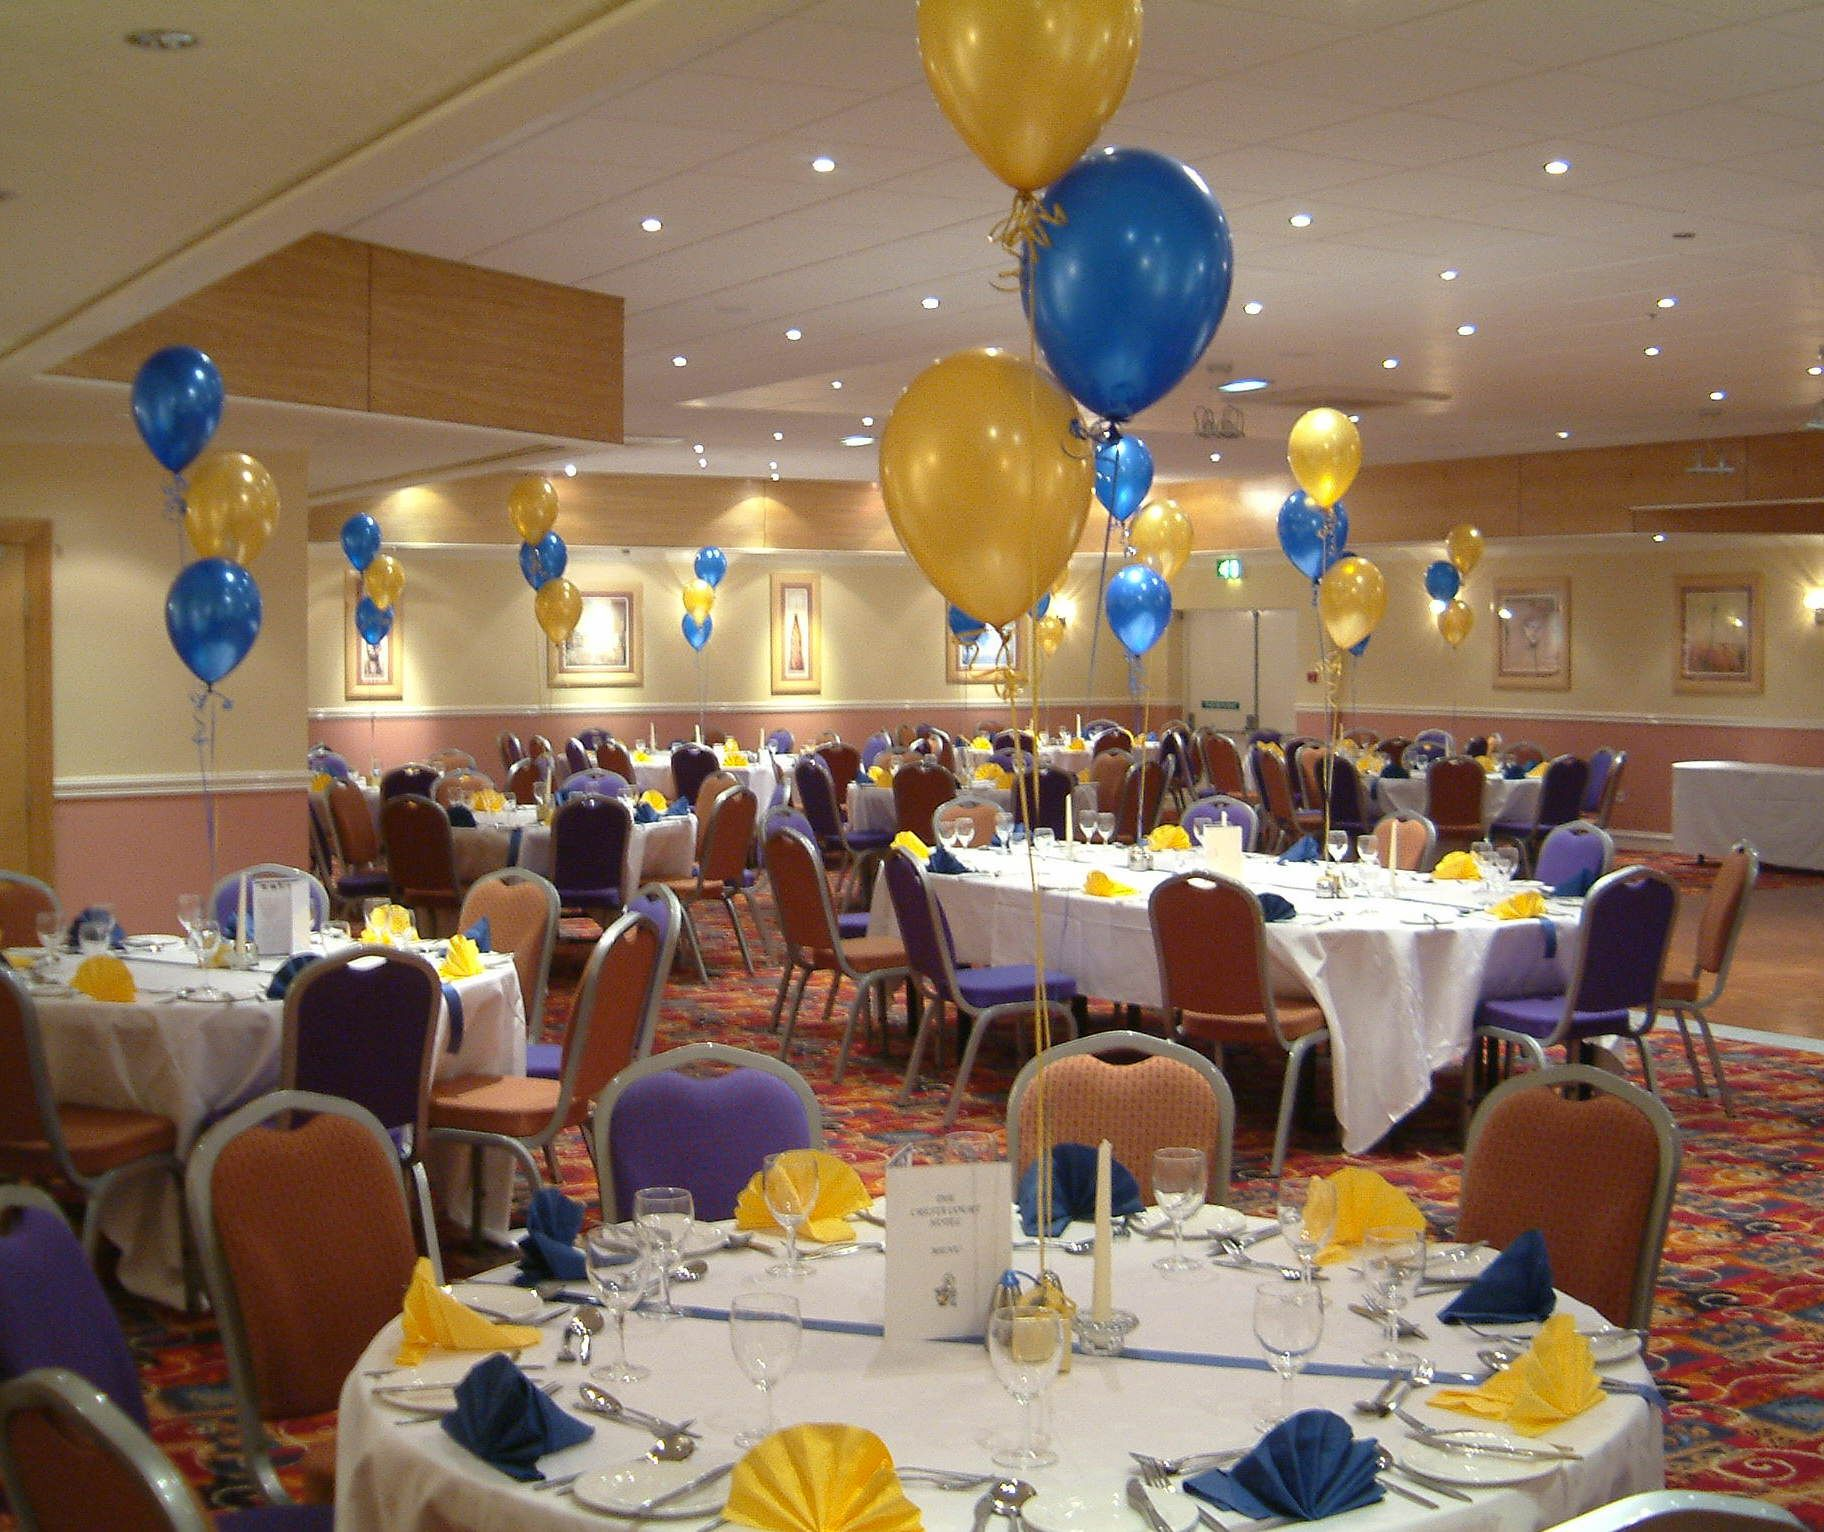 balloon decoration ideas for function room | freemason party for